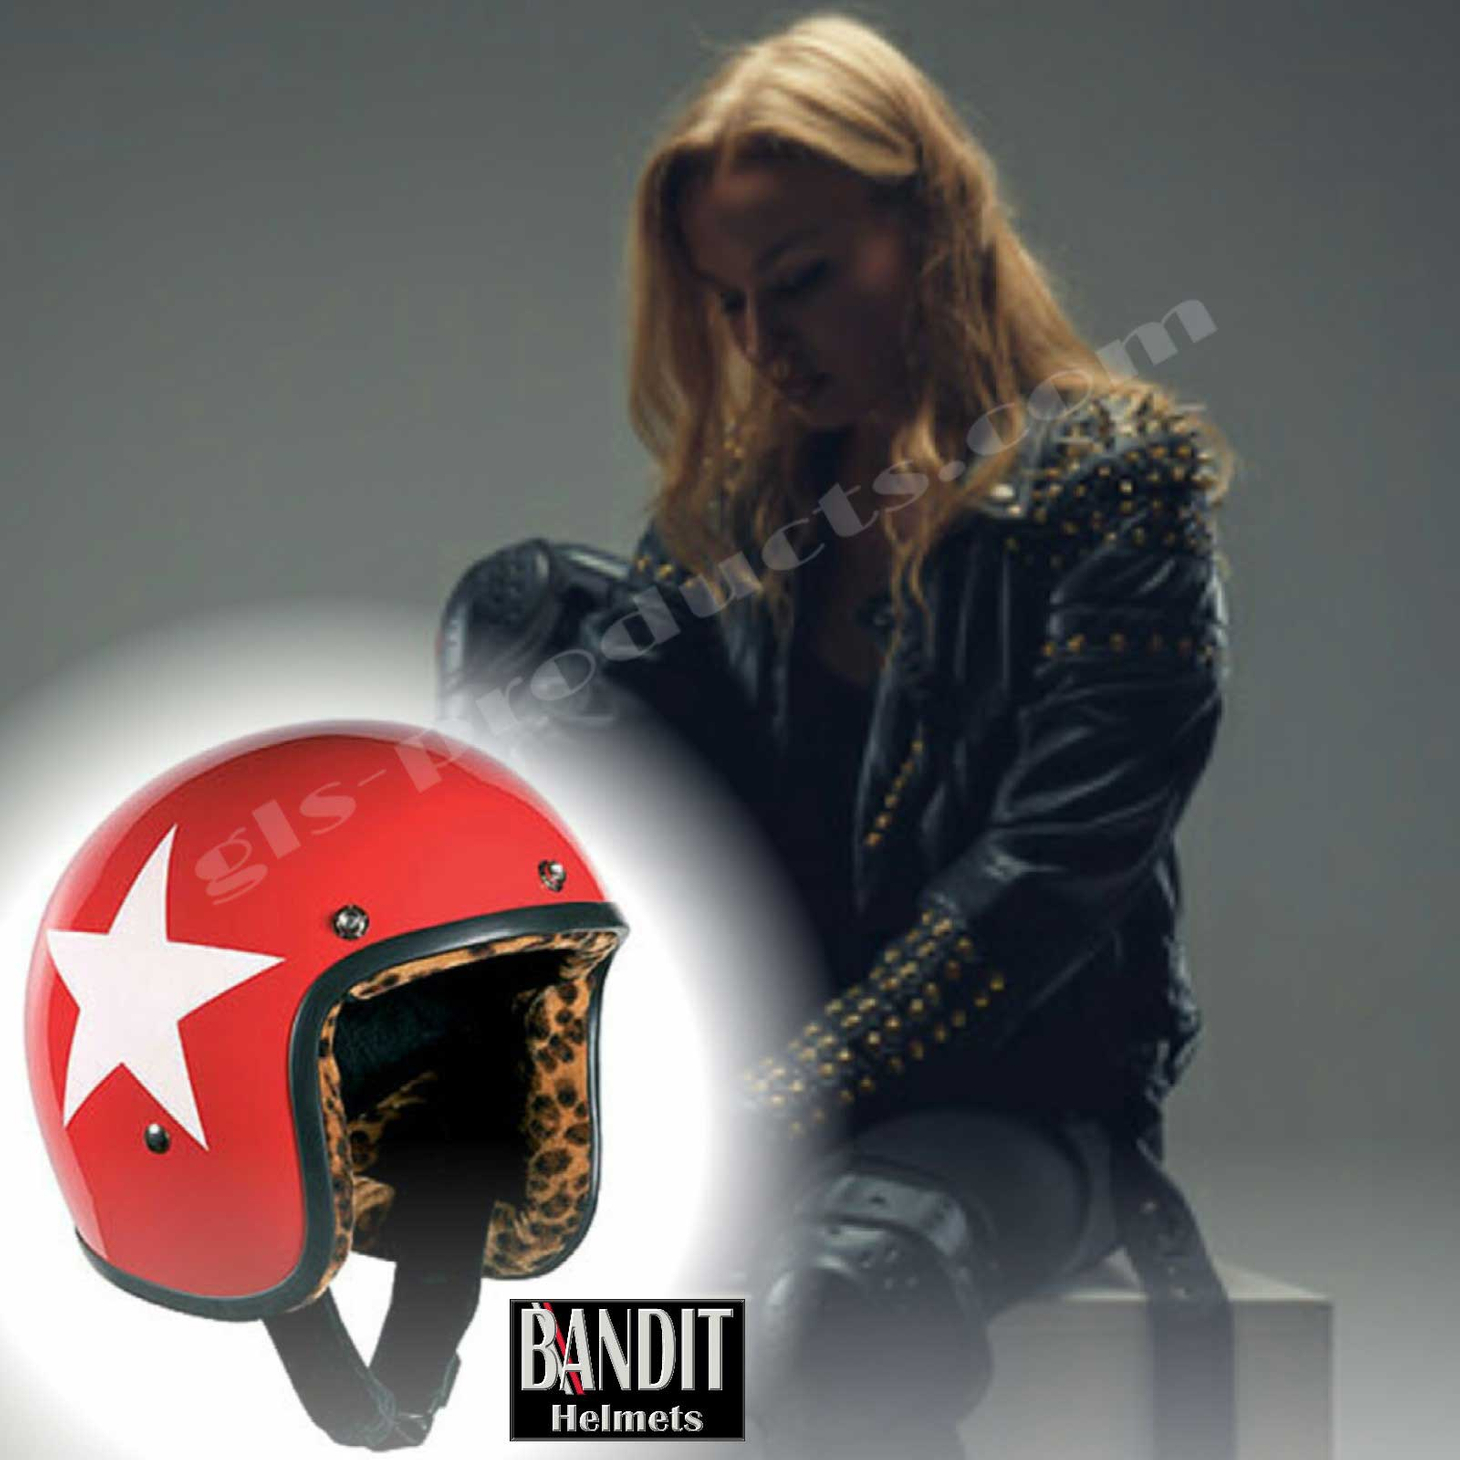 Bandit Star Red Leo Jet Helmet - Red Leopard Print Motorcycle Helmet – Picture 8